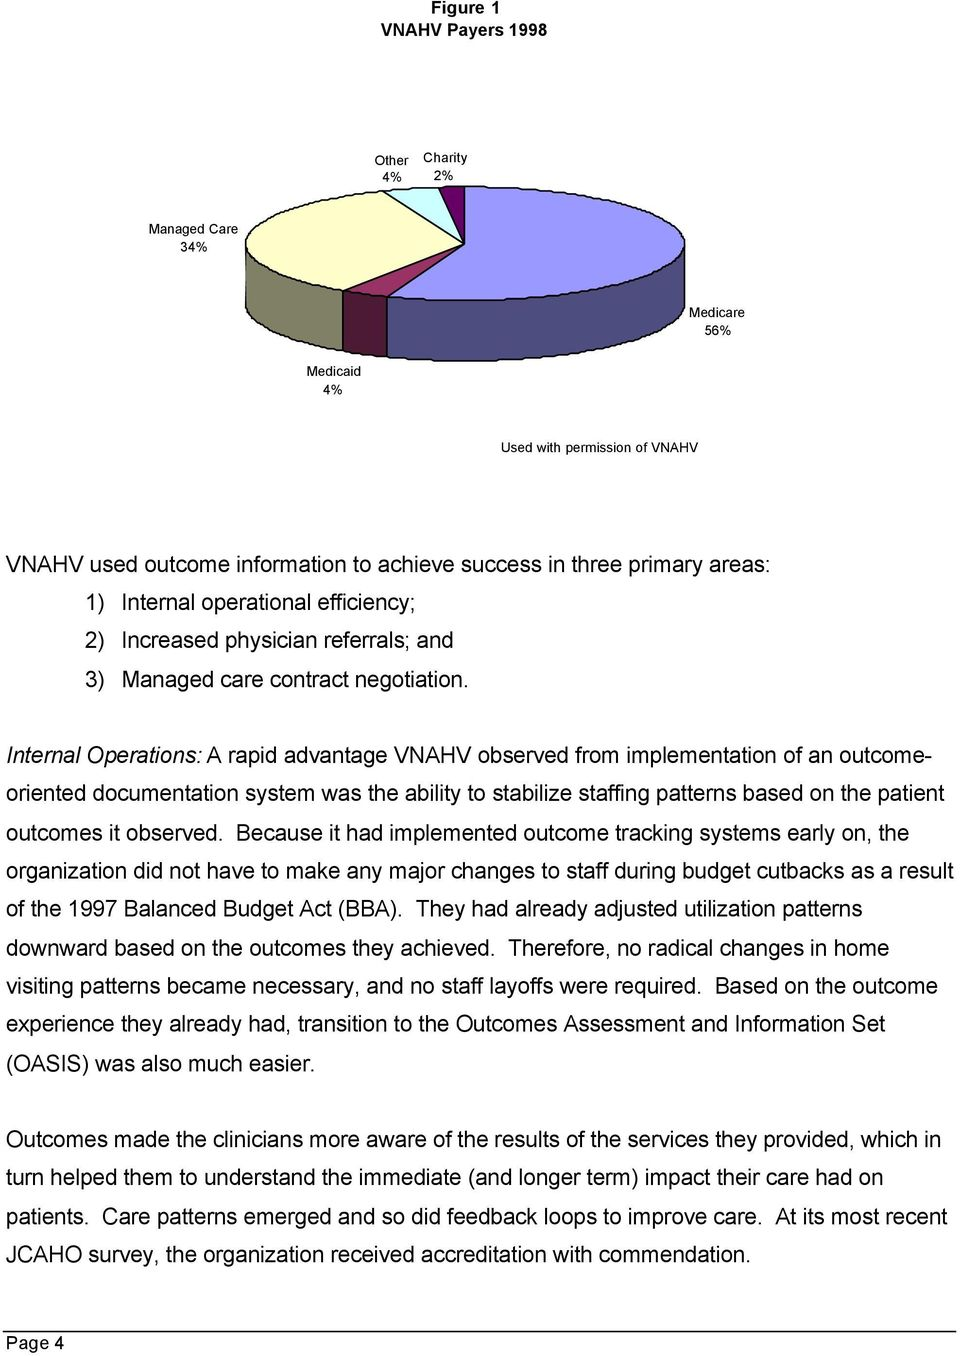 Internal Operations: A rapid advantage VNAHV observed from implementation of an outcomeoriented documentation system was the ability to stabilize staffing patterns based on the patient outcomes it